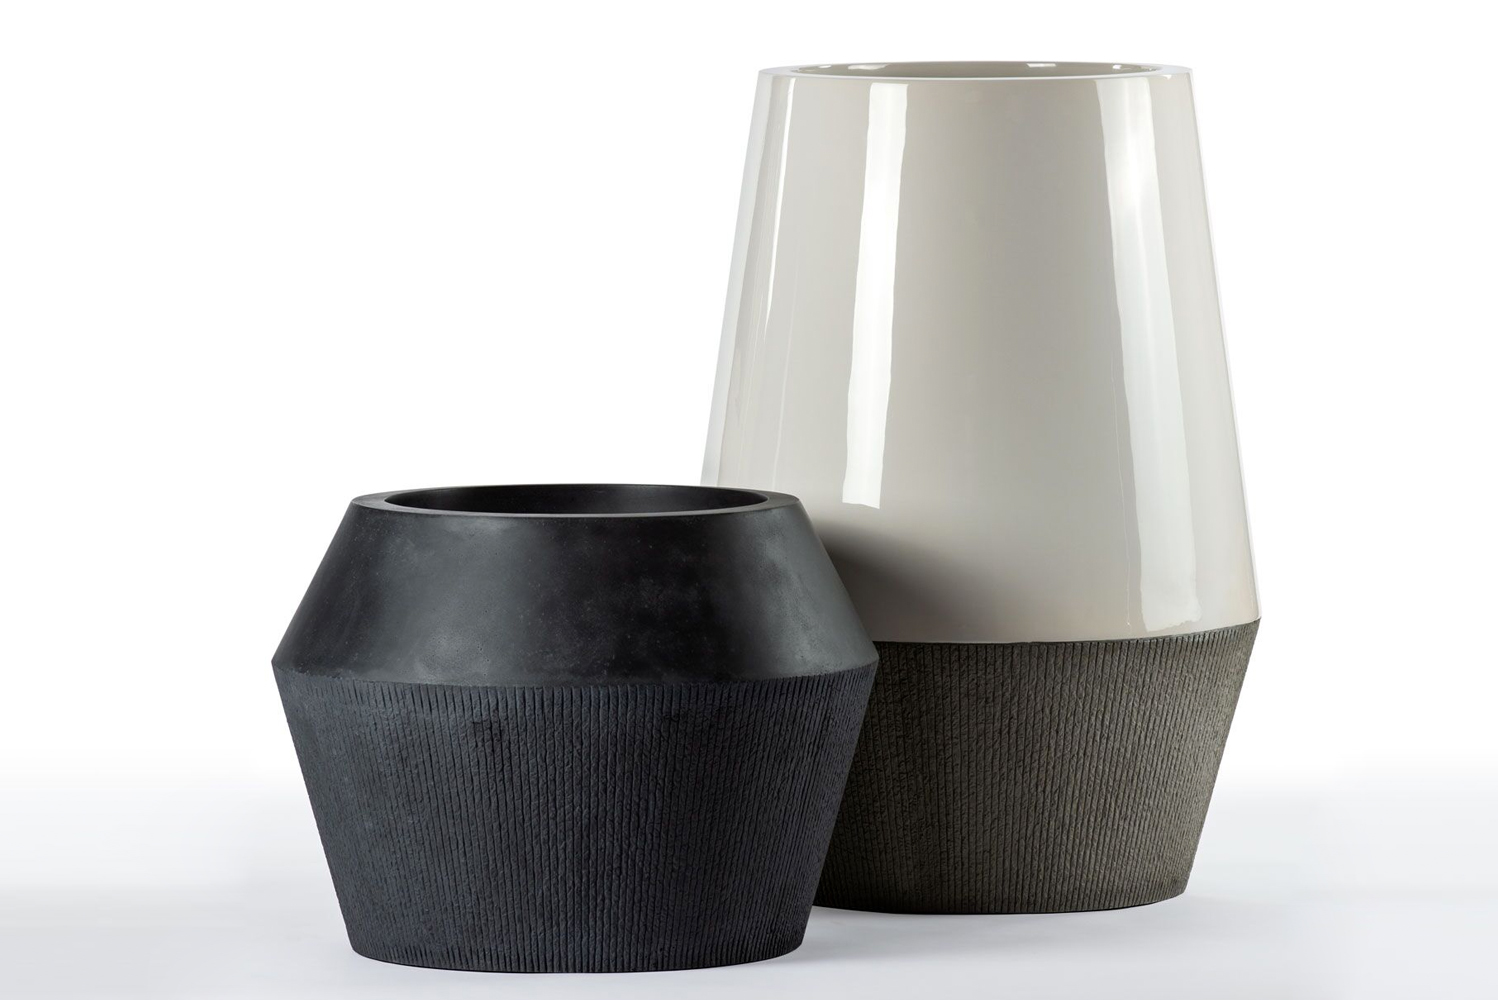 The Volta planter is made of a mix of fiberstone and fiberglass.